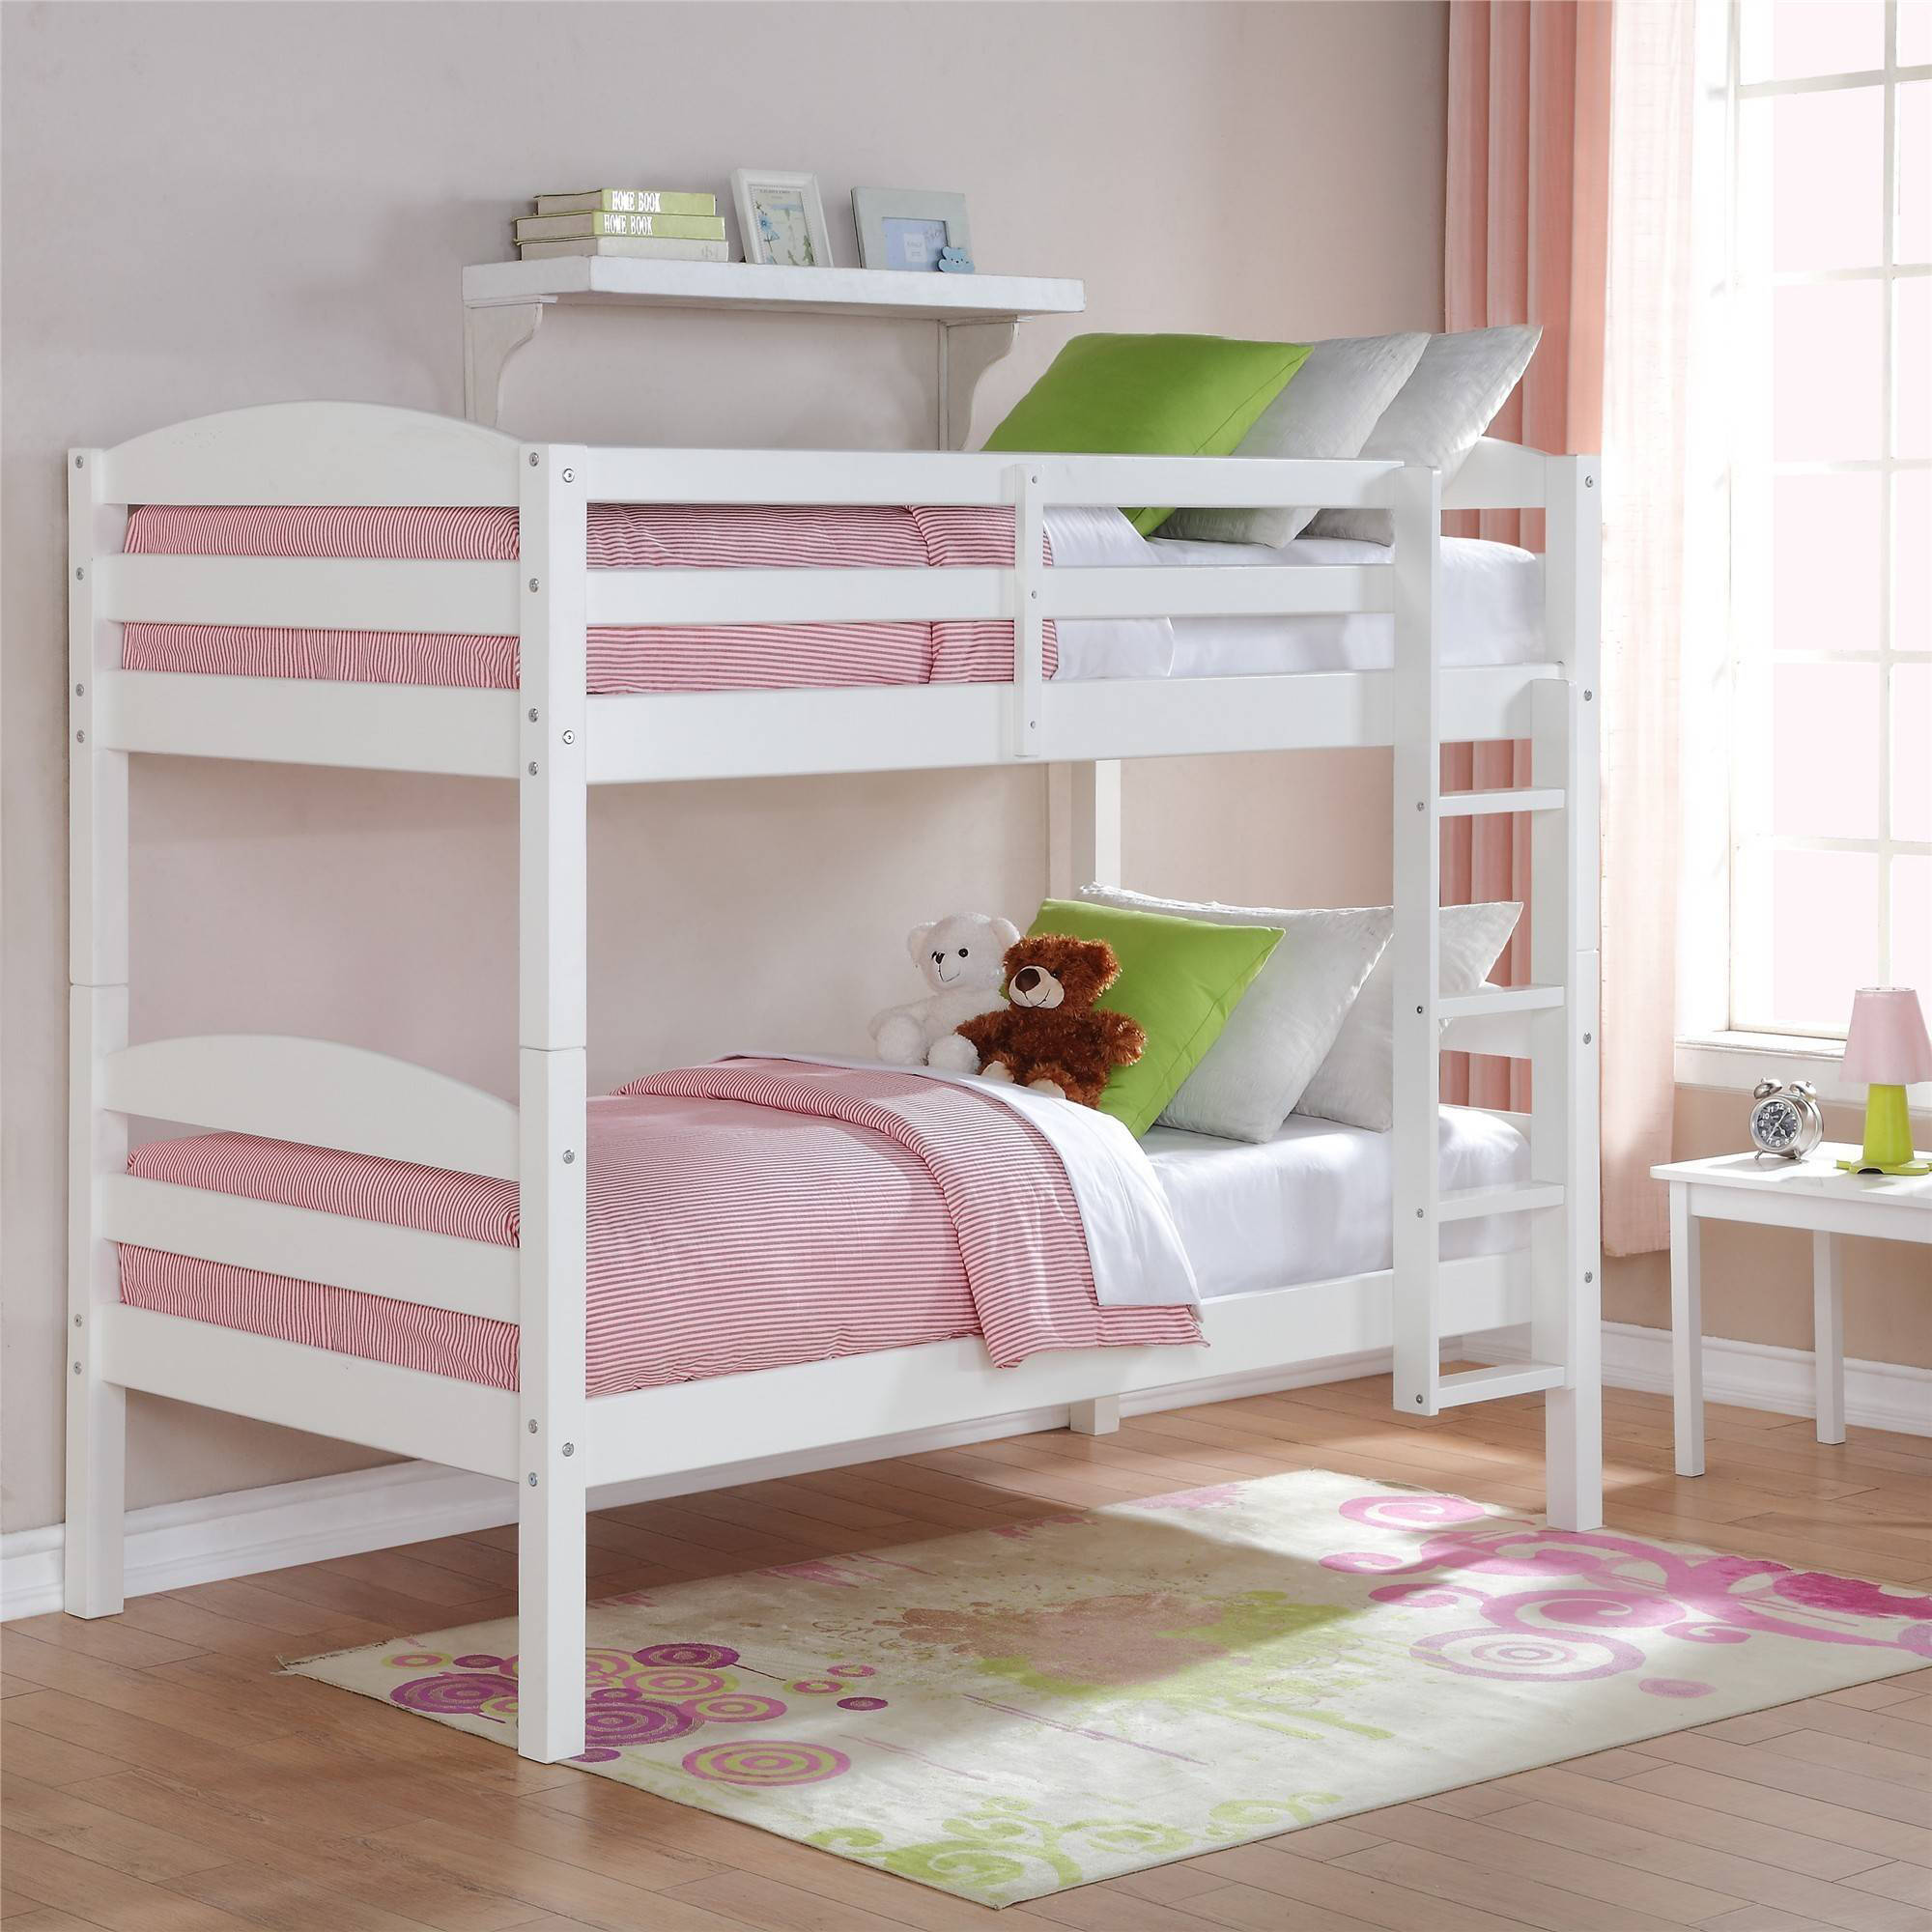 beds says bunk kids pallets headboard could work bed even hammock for it ryan we until get using this pin